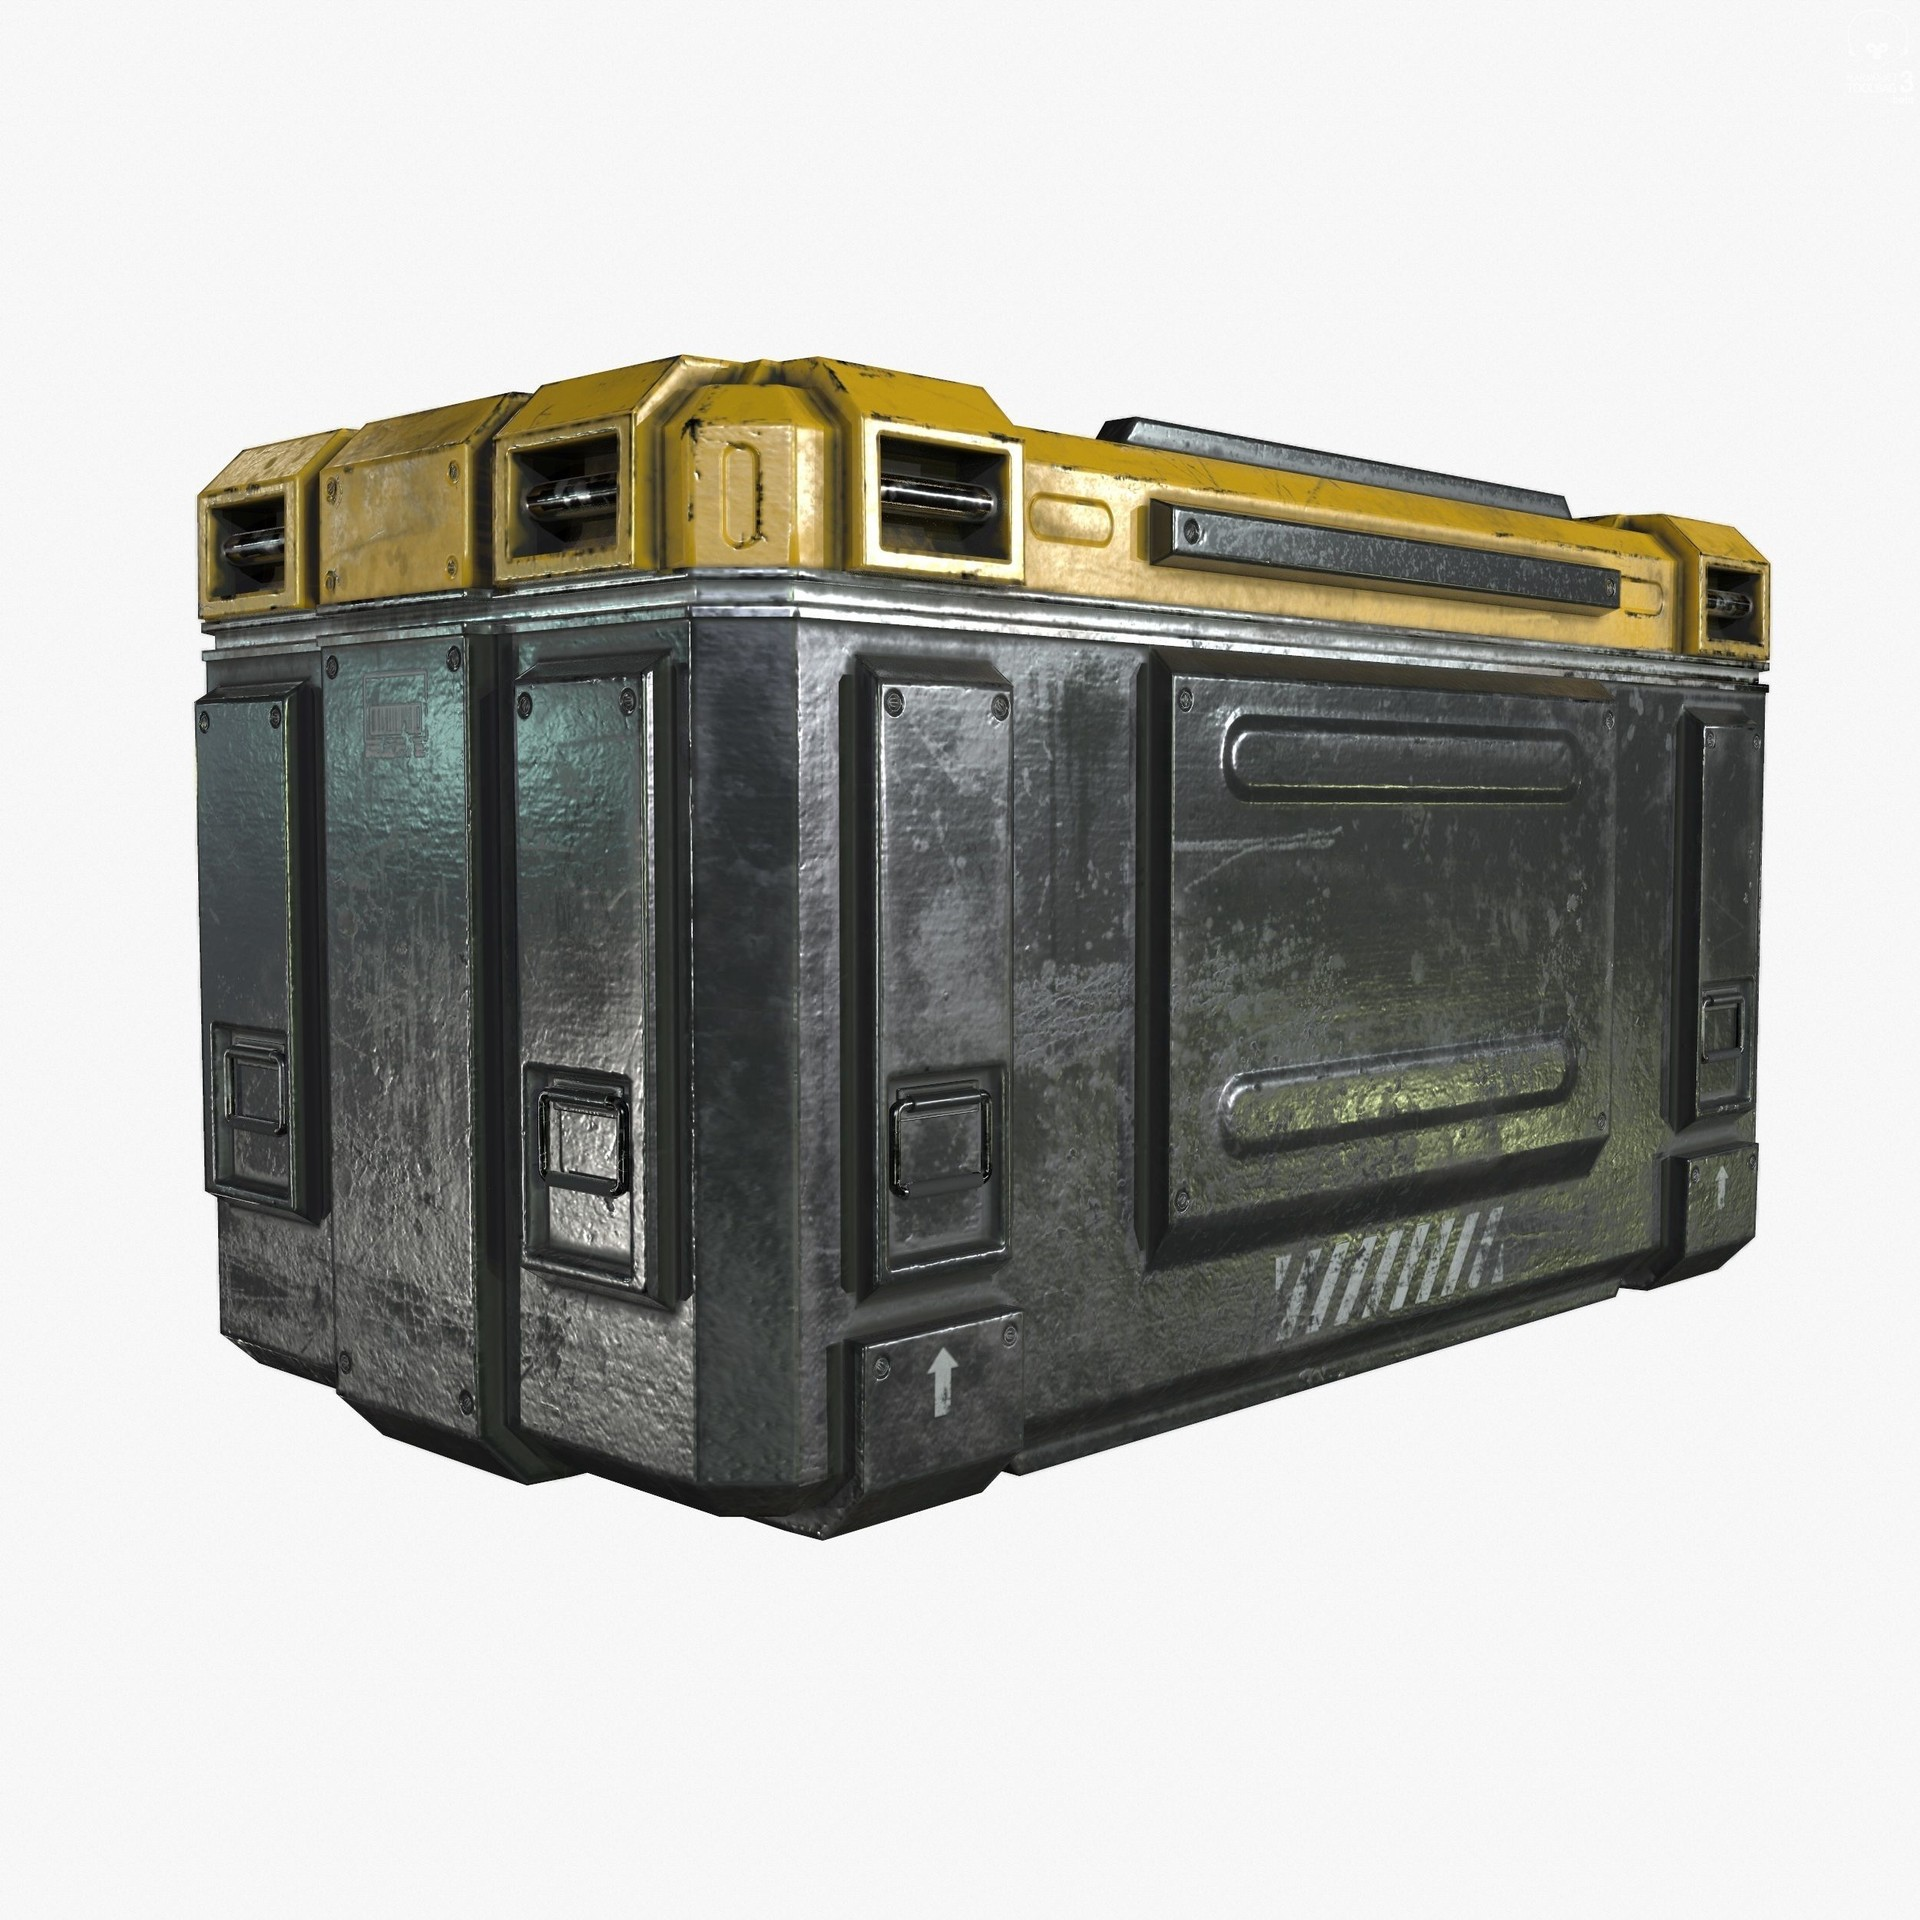 kamil ali 3d sci fi industrial crate game ready pbr textures 3d model low poly 1